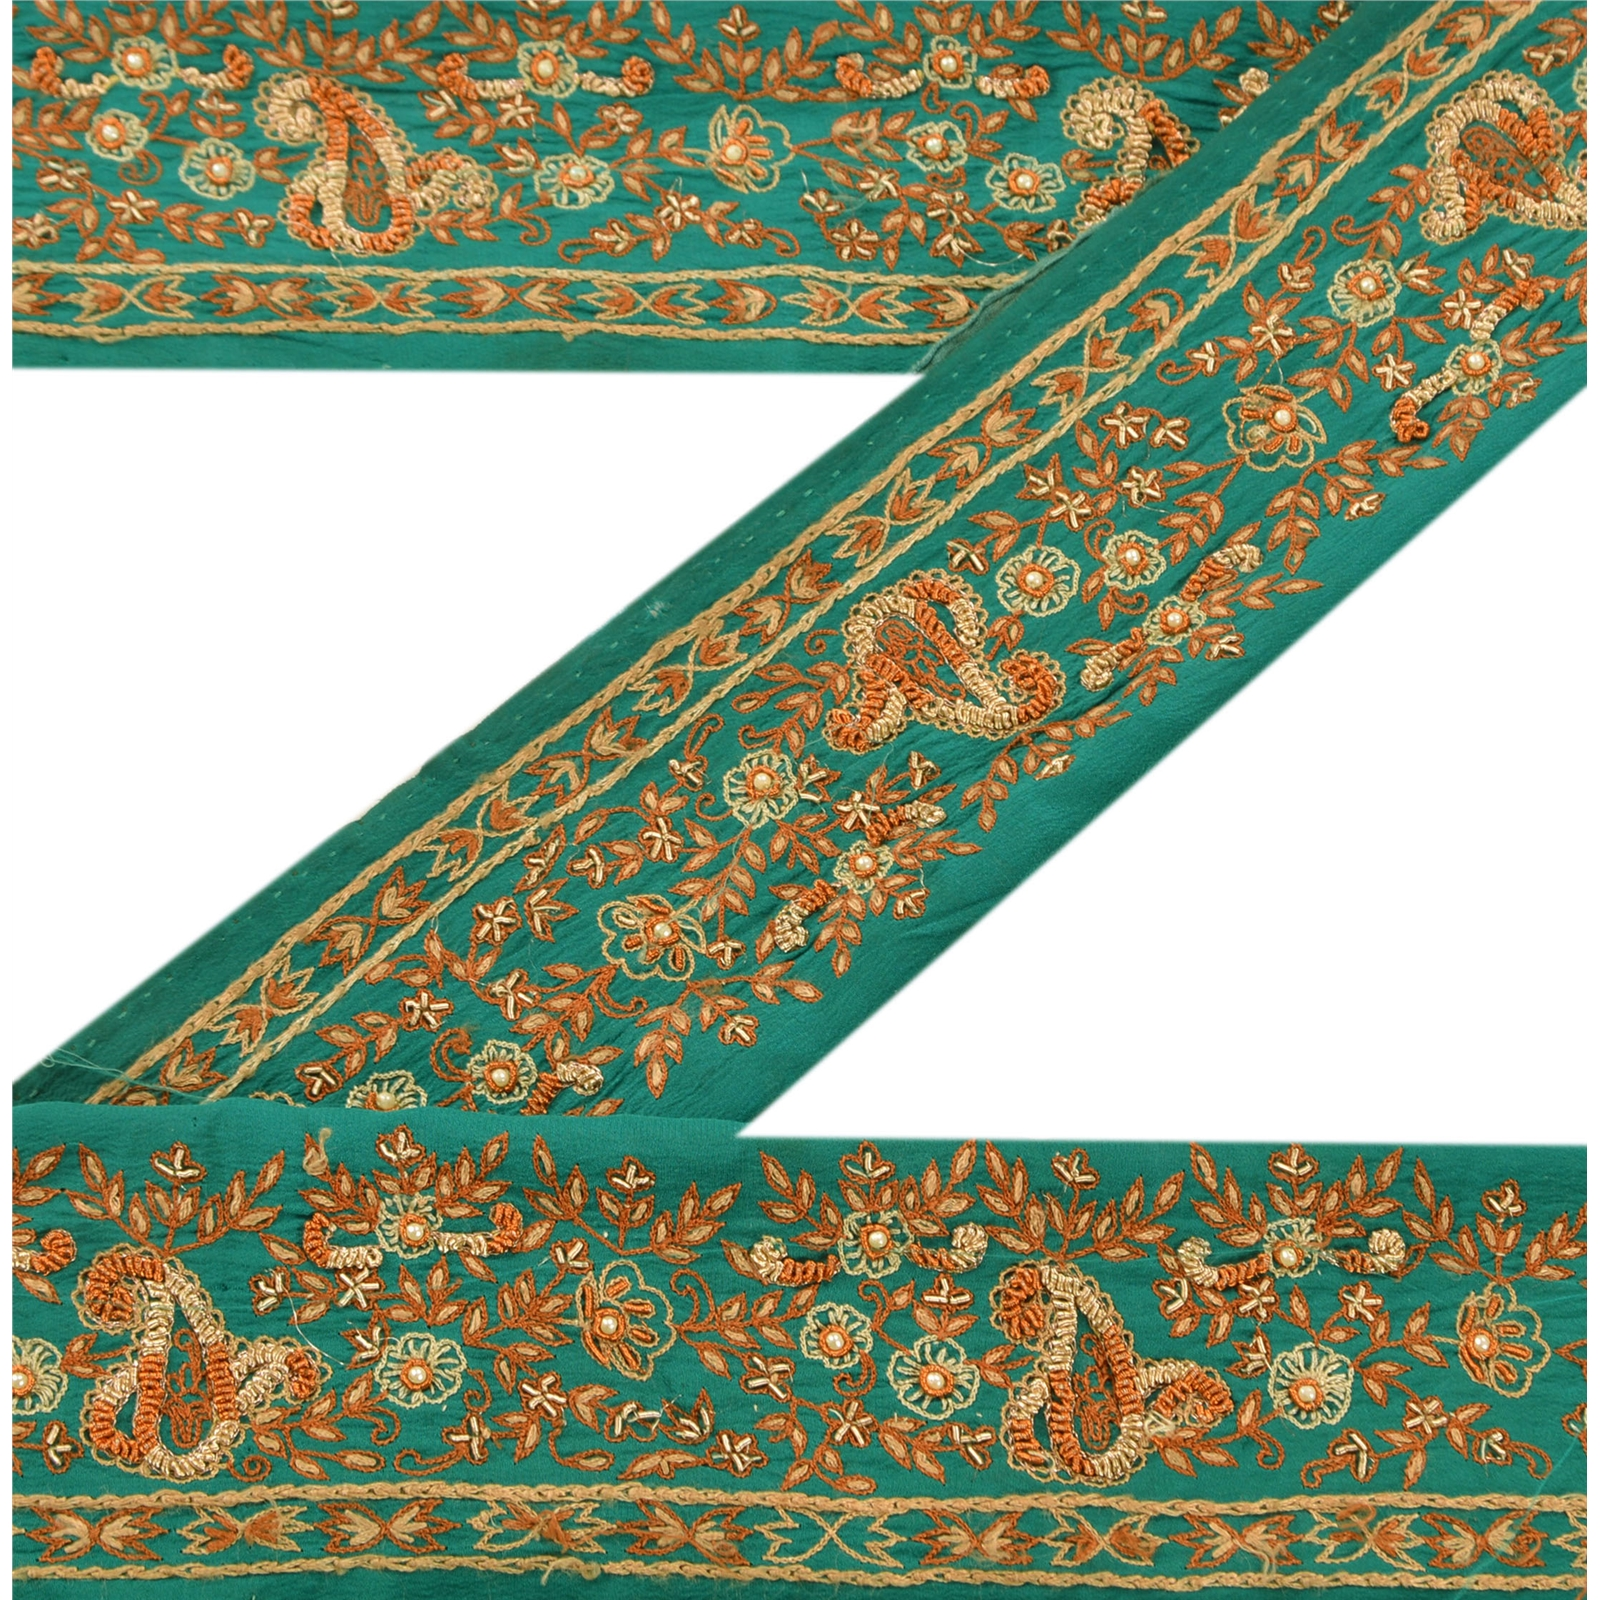 56820addb9 Details about Sanskriti Vintage Sari Border Indian Craft Green Trim Hand  Beaded Sewing Lace